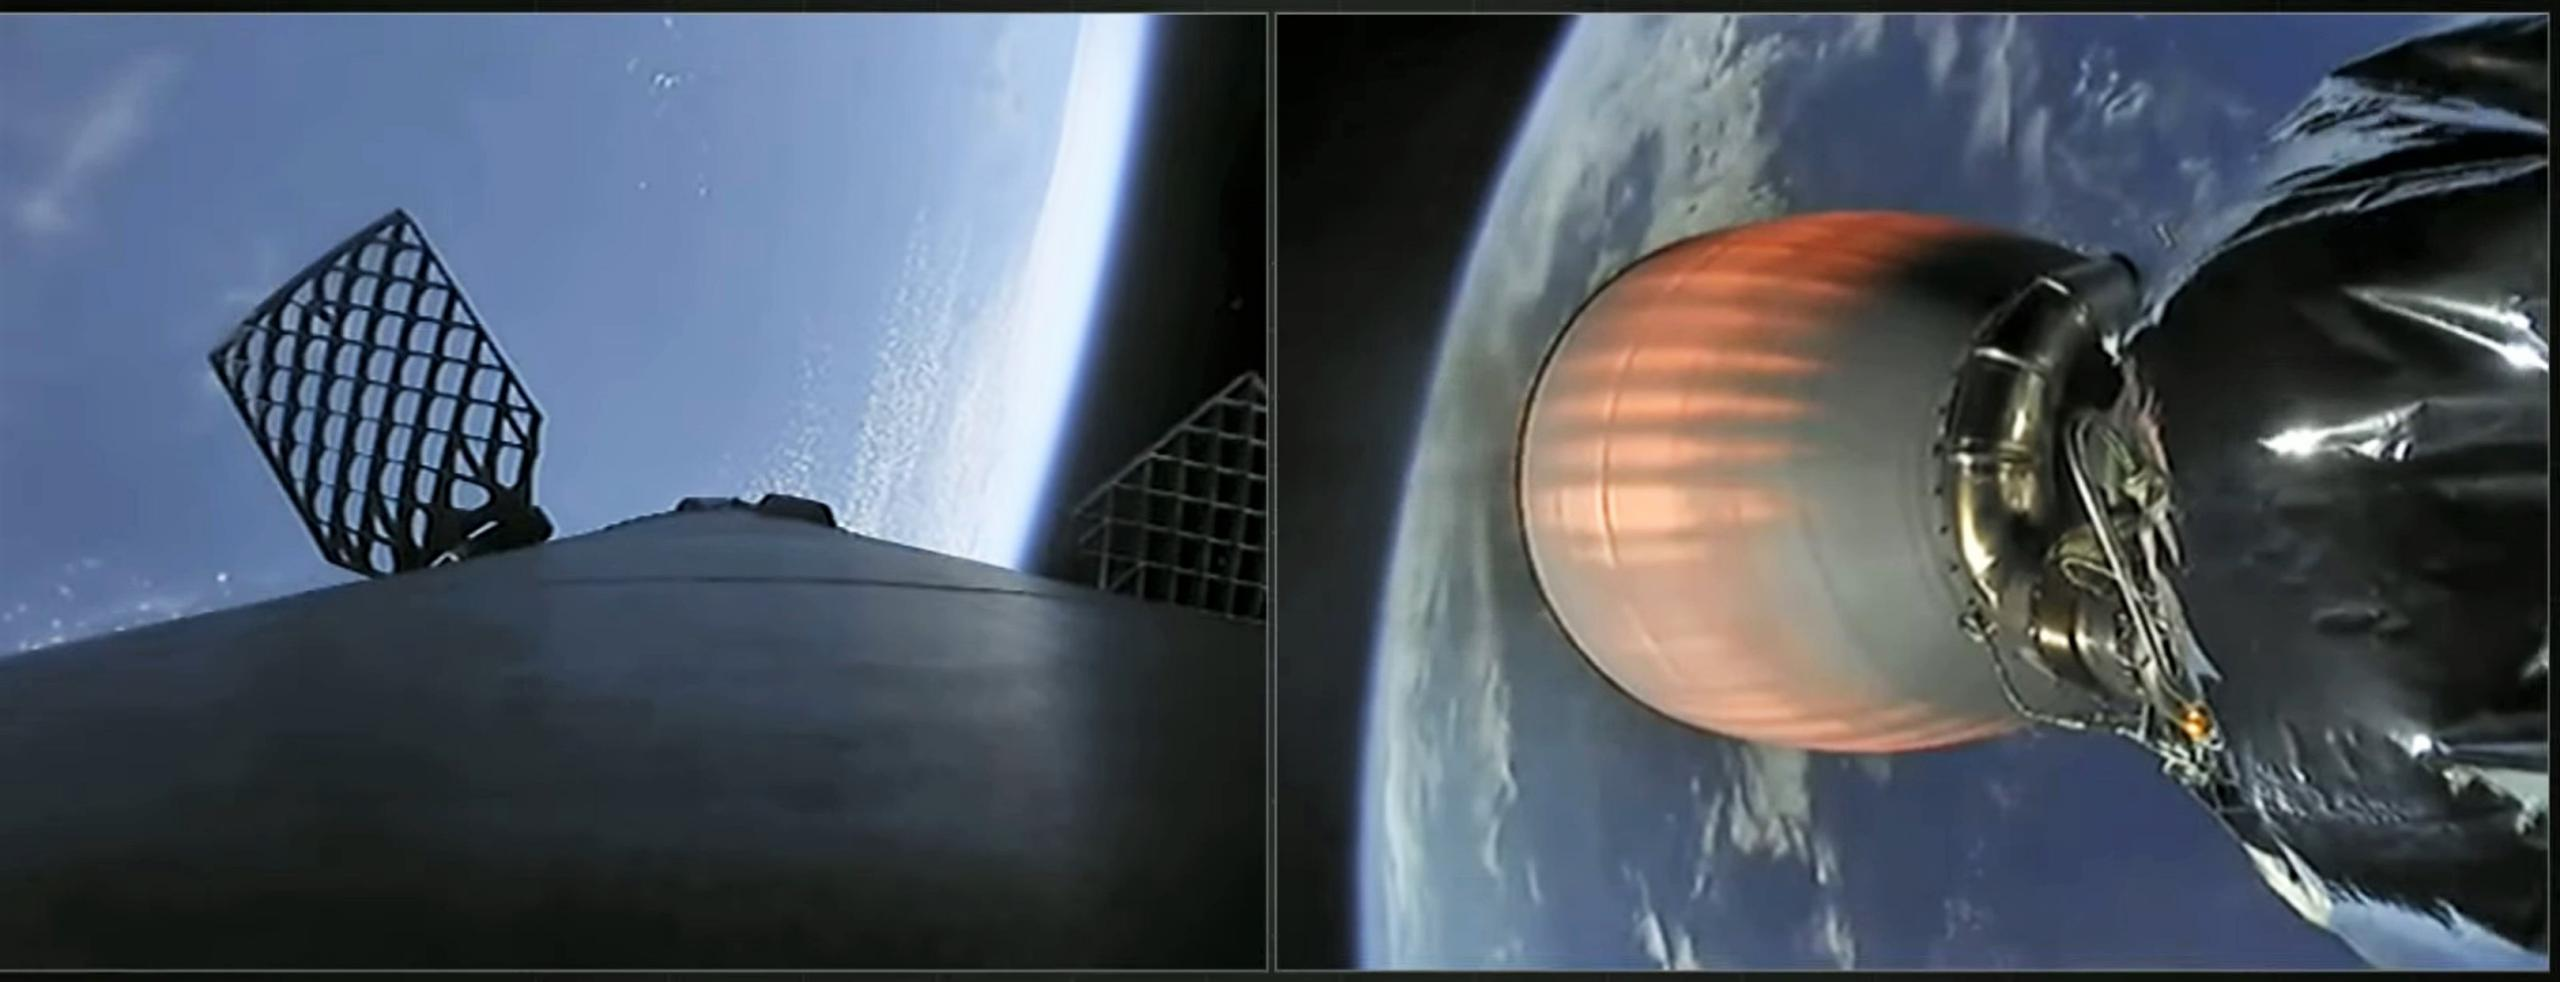 CRS-21 Cargo Dragon 2 Falcon 9 B1058 120620 webcast (SpaceX) recovery 1 (c)